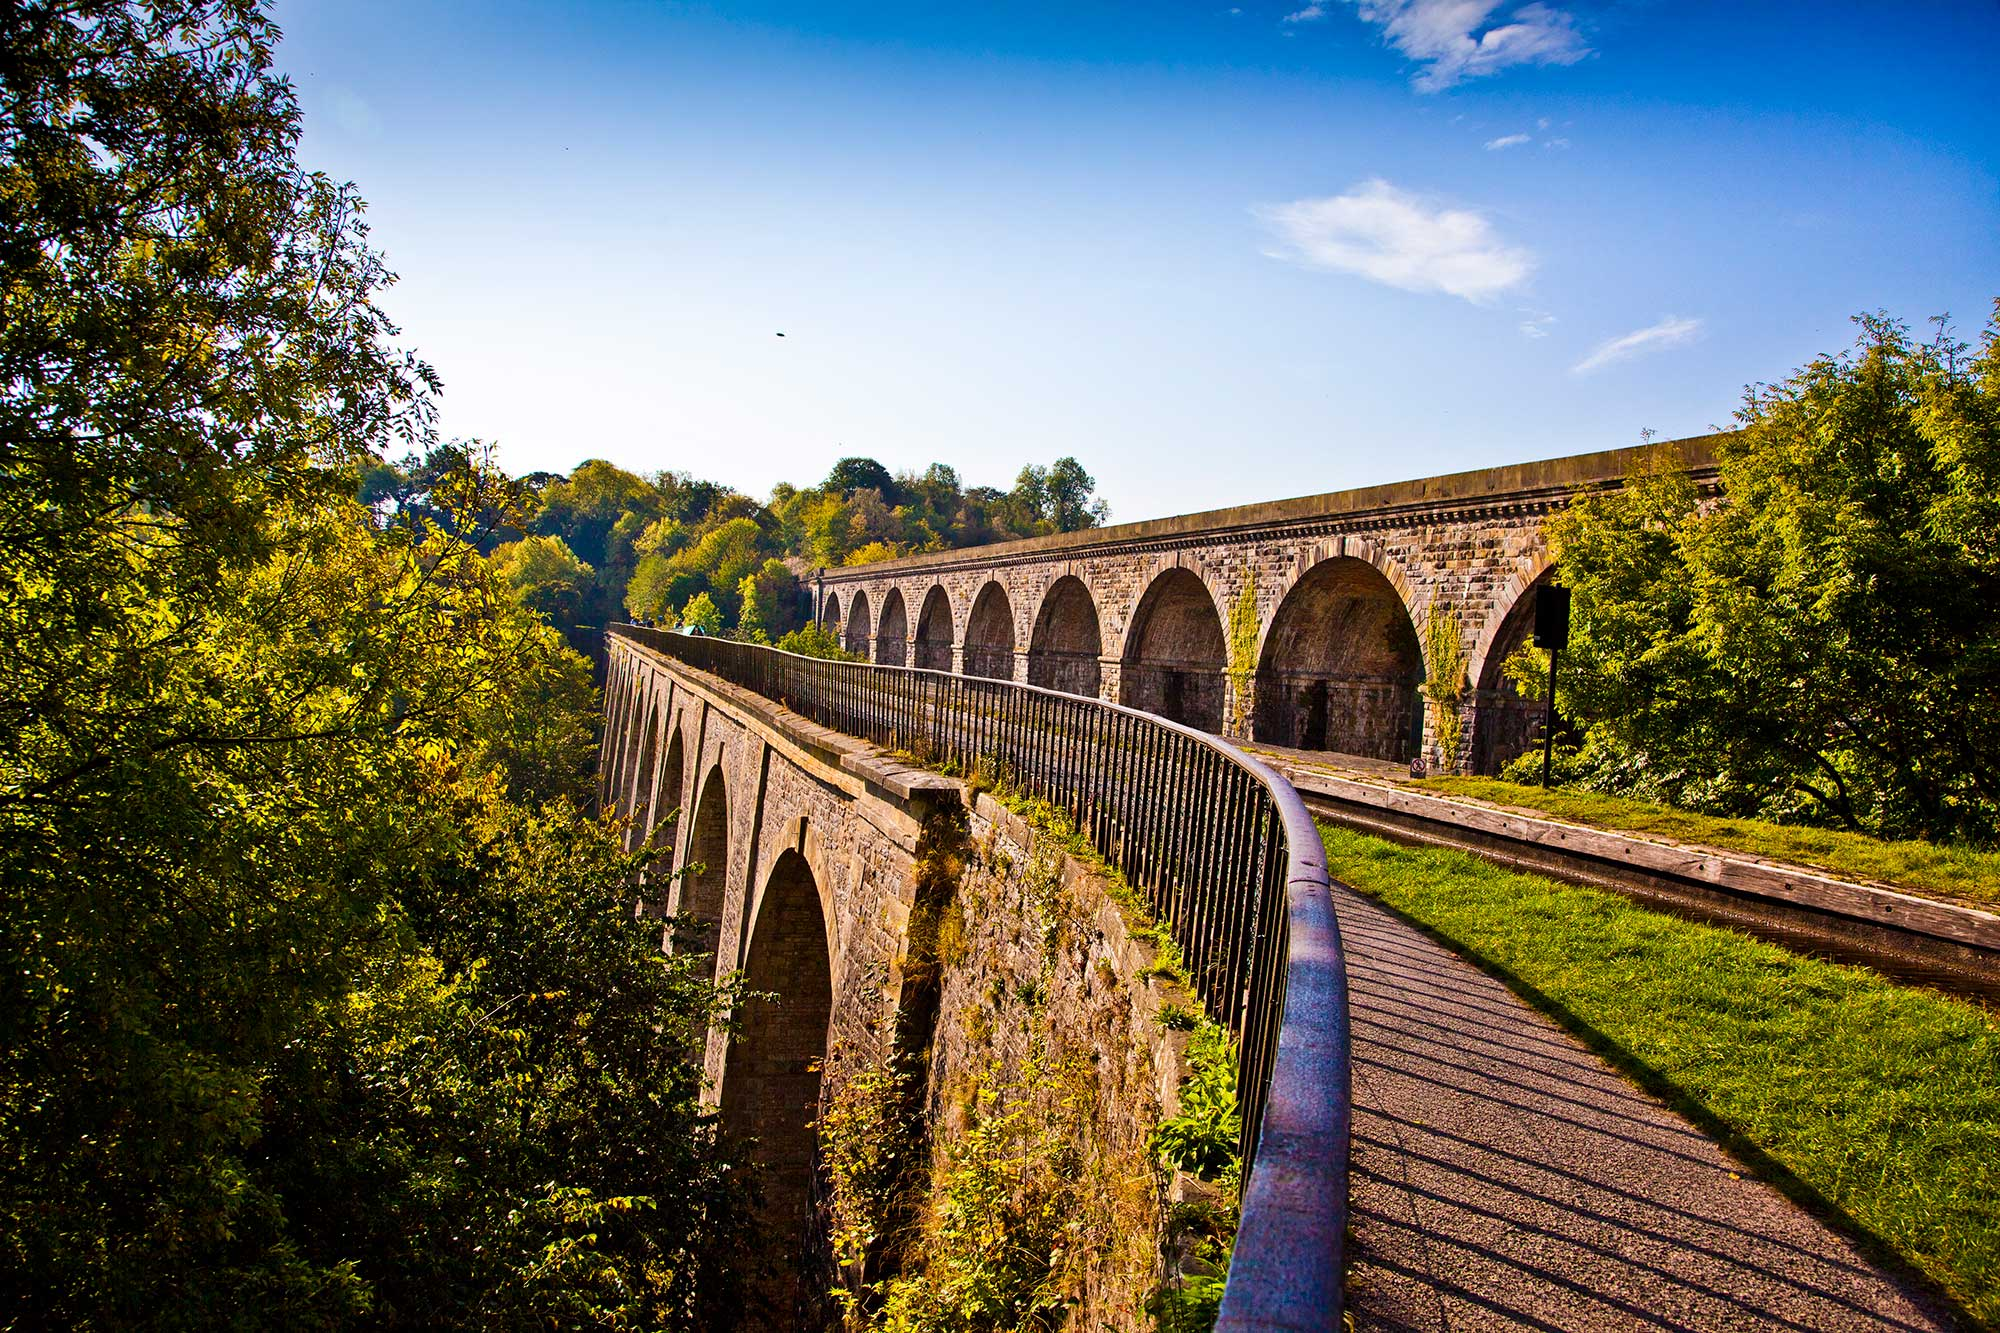 *chirk aqueduct and chirk viaduct